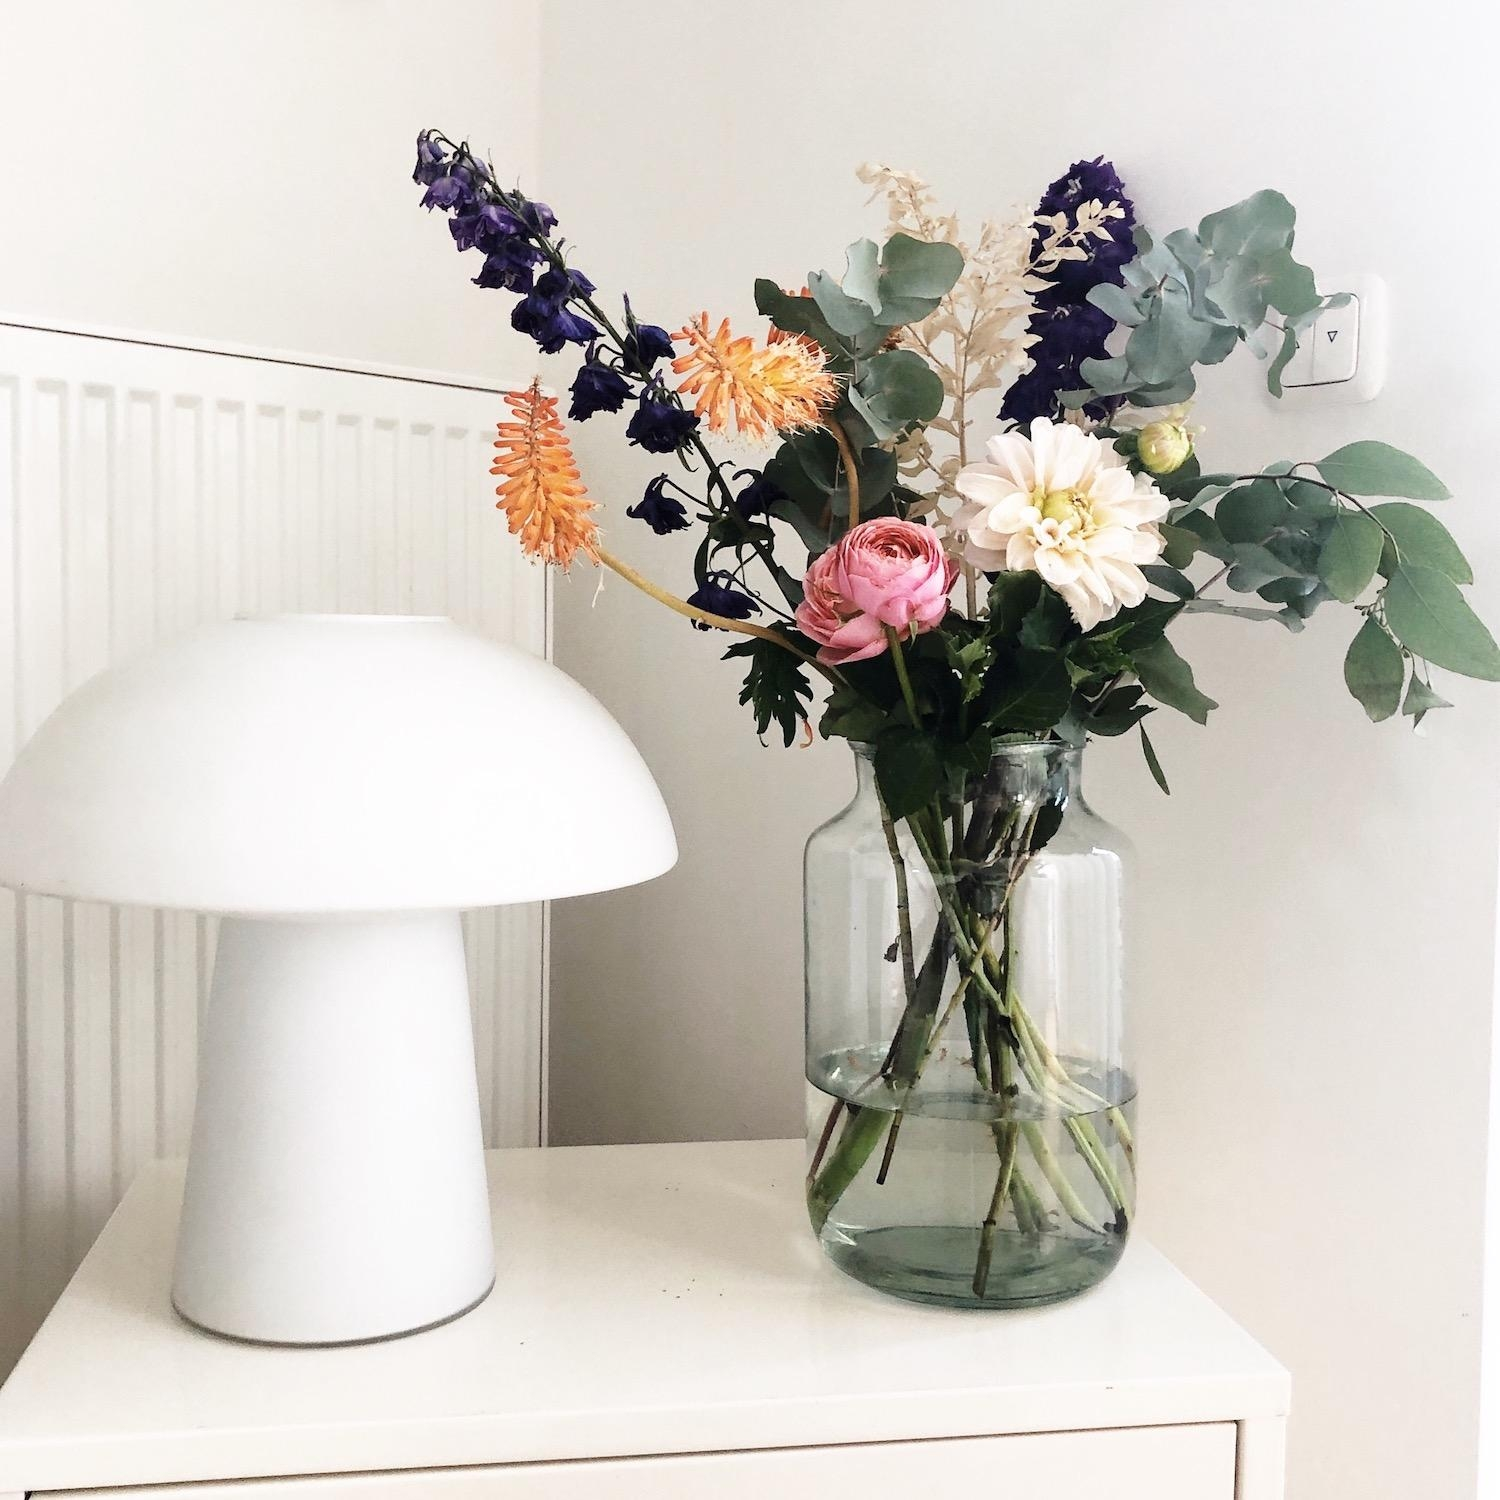 Easy Floral Styling mit Eukalyptus #Blumenstyling #Blumendeko #Floralstyling #Deko #Blumenstrauss #Scandistyle